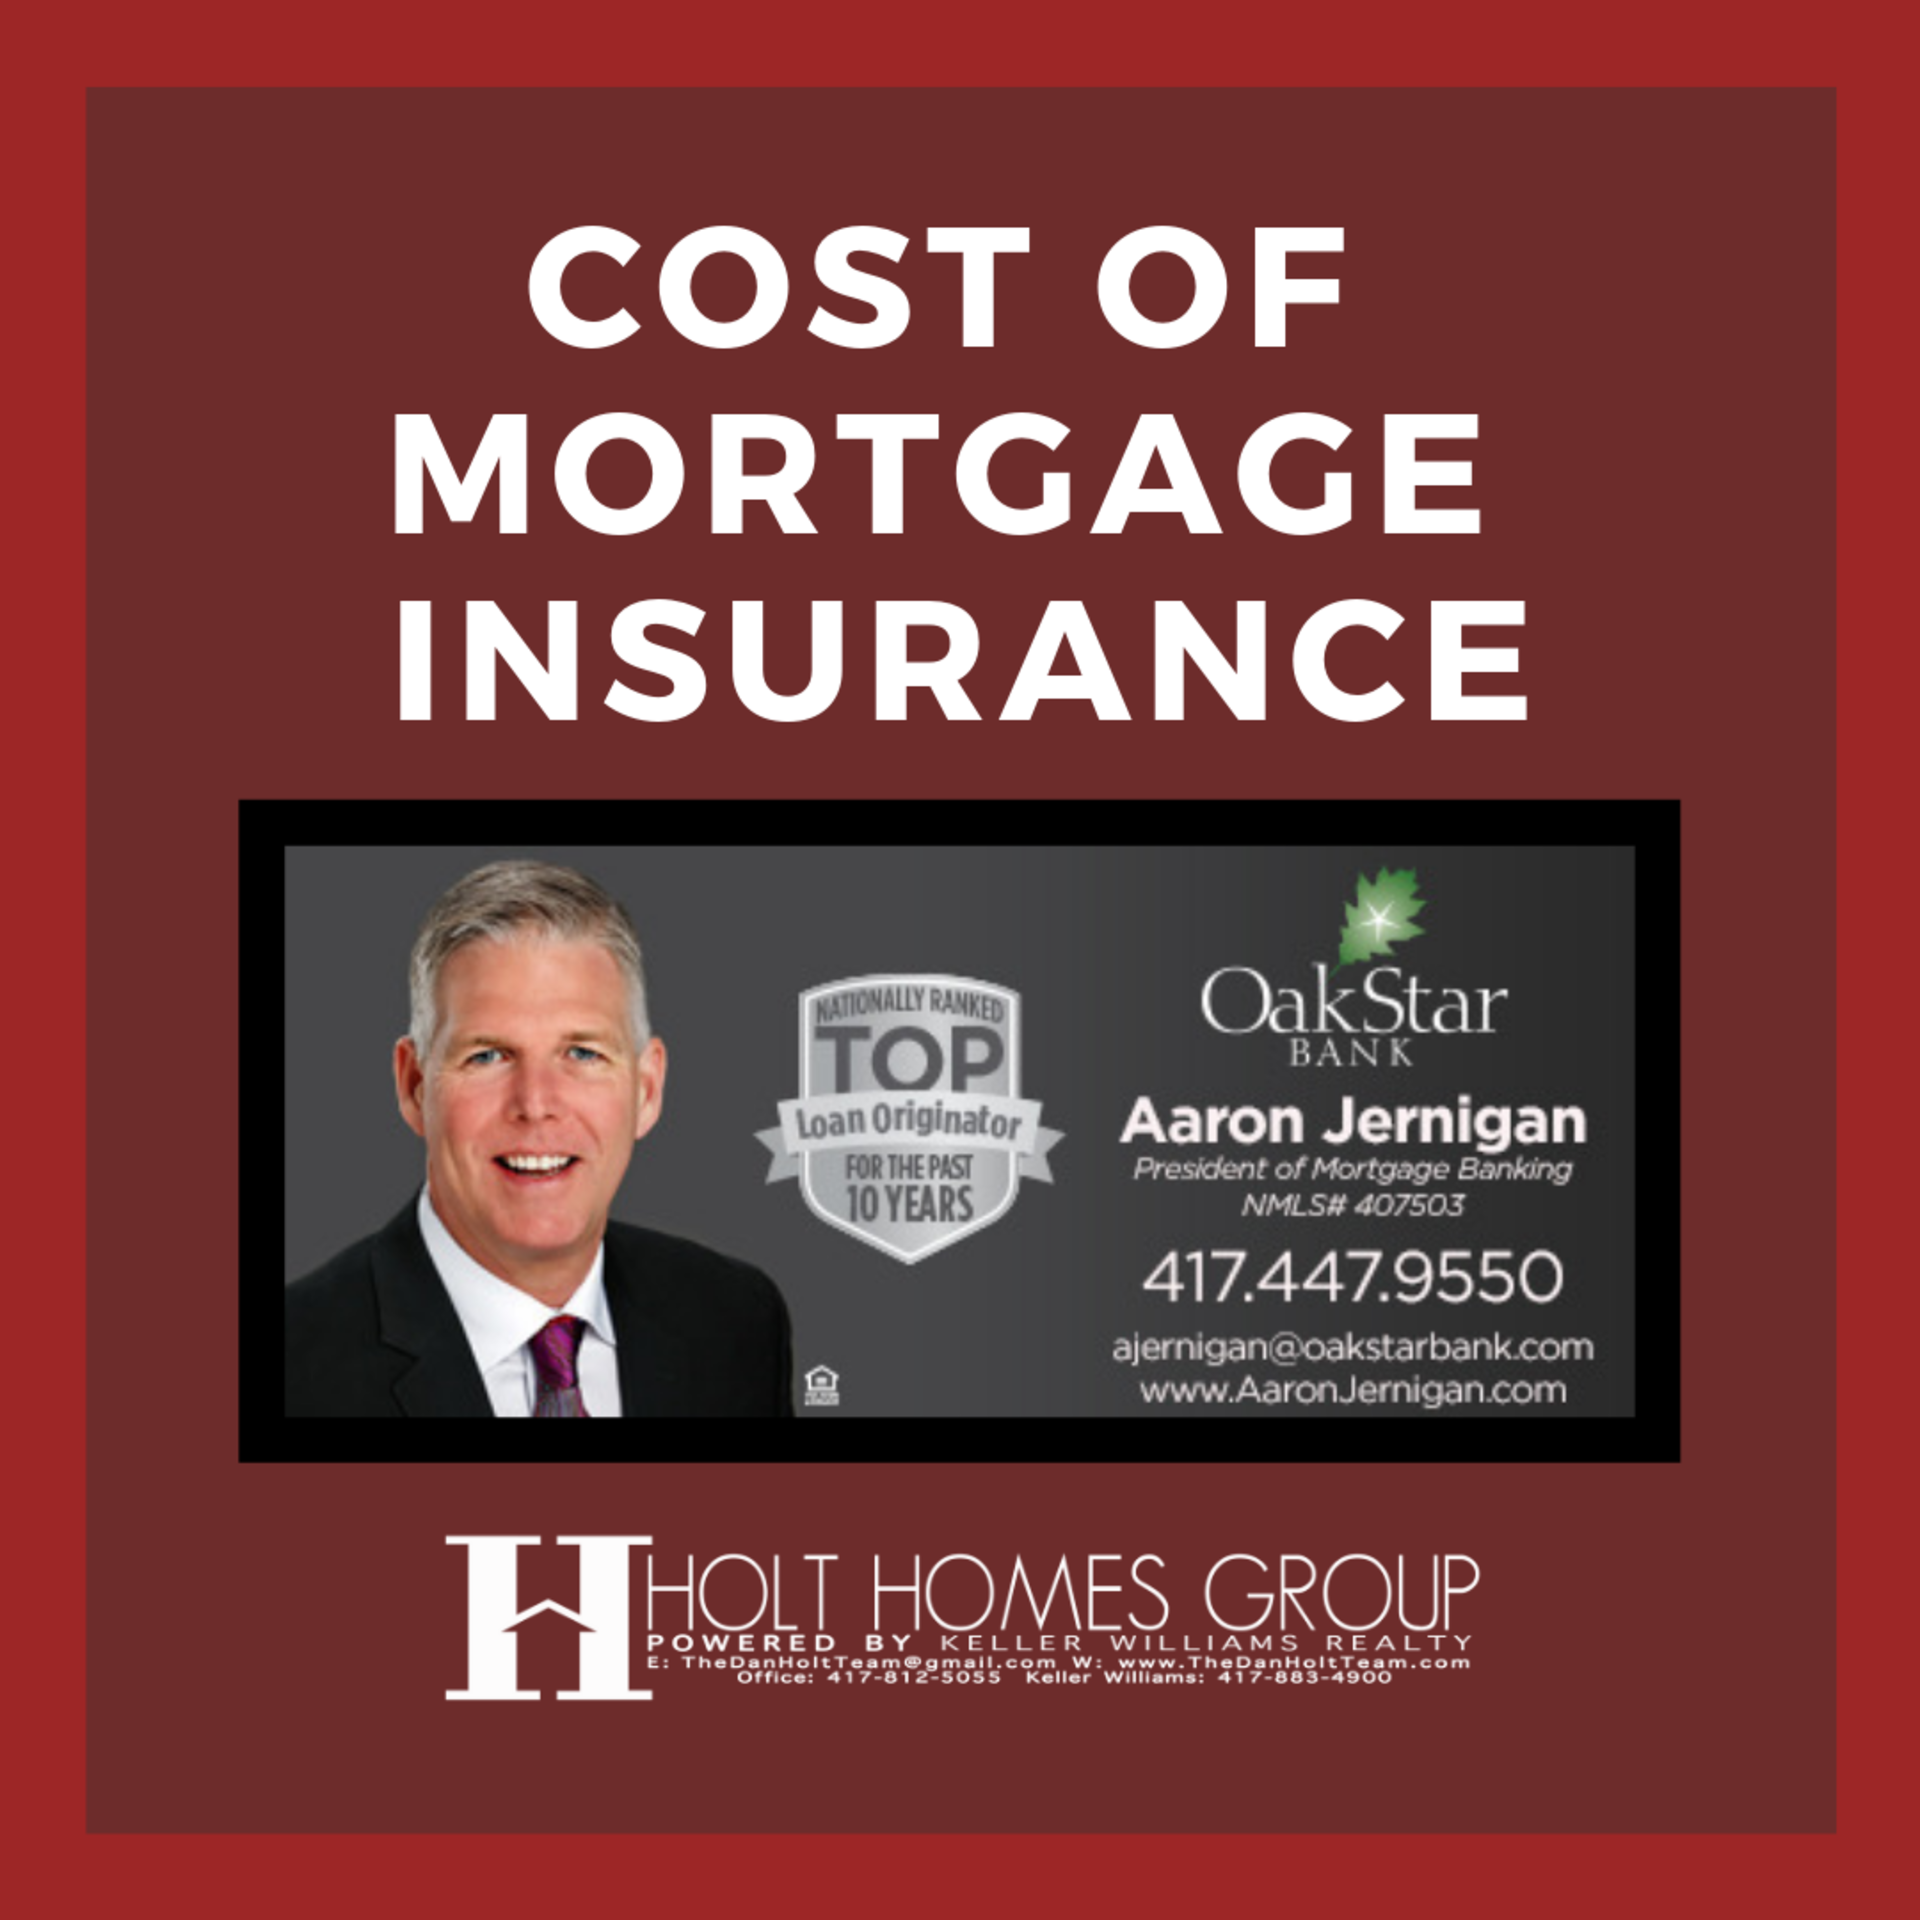 Mortgage Insurance Costs